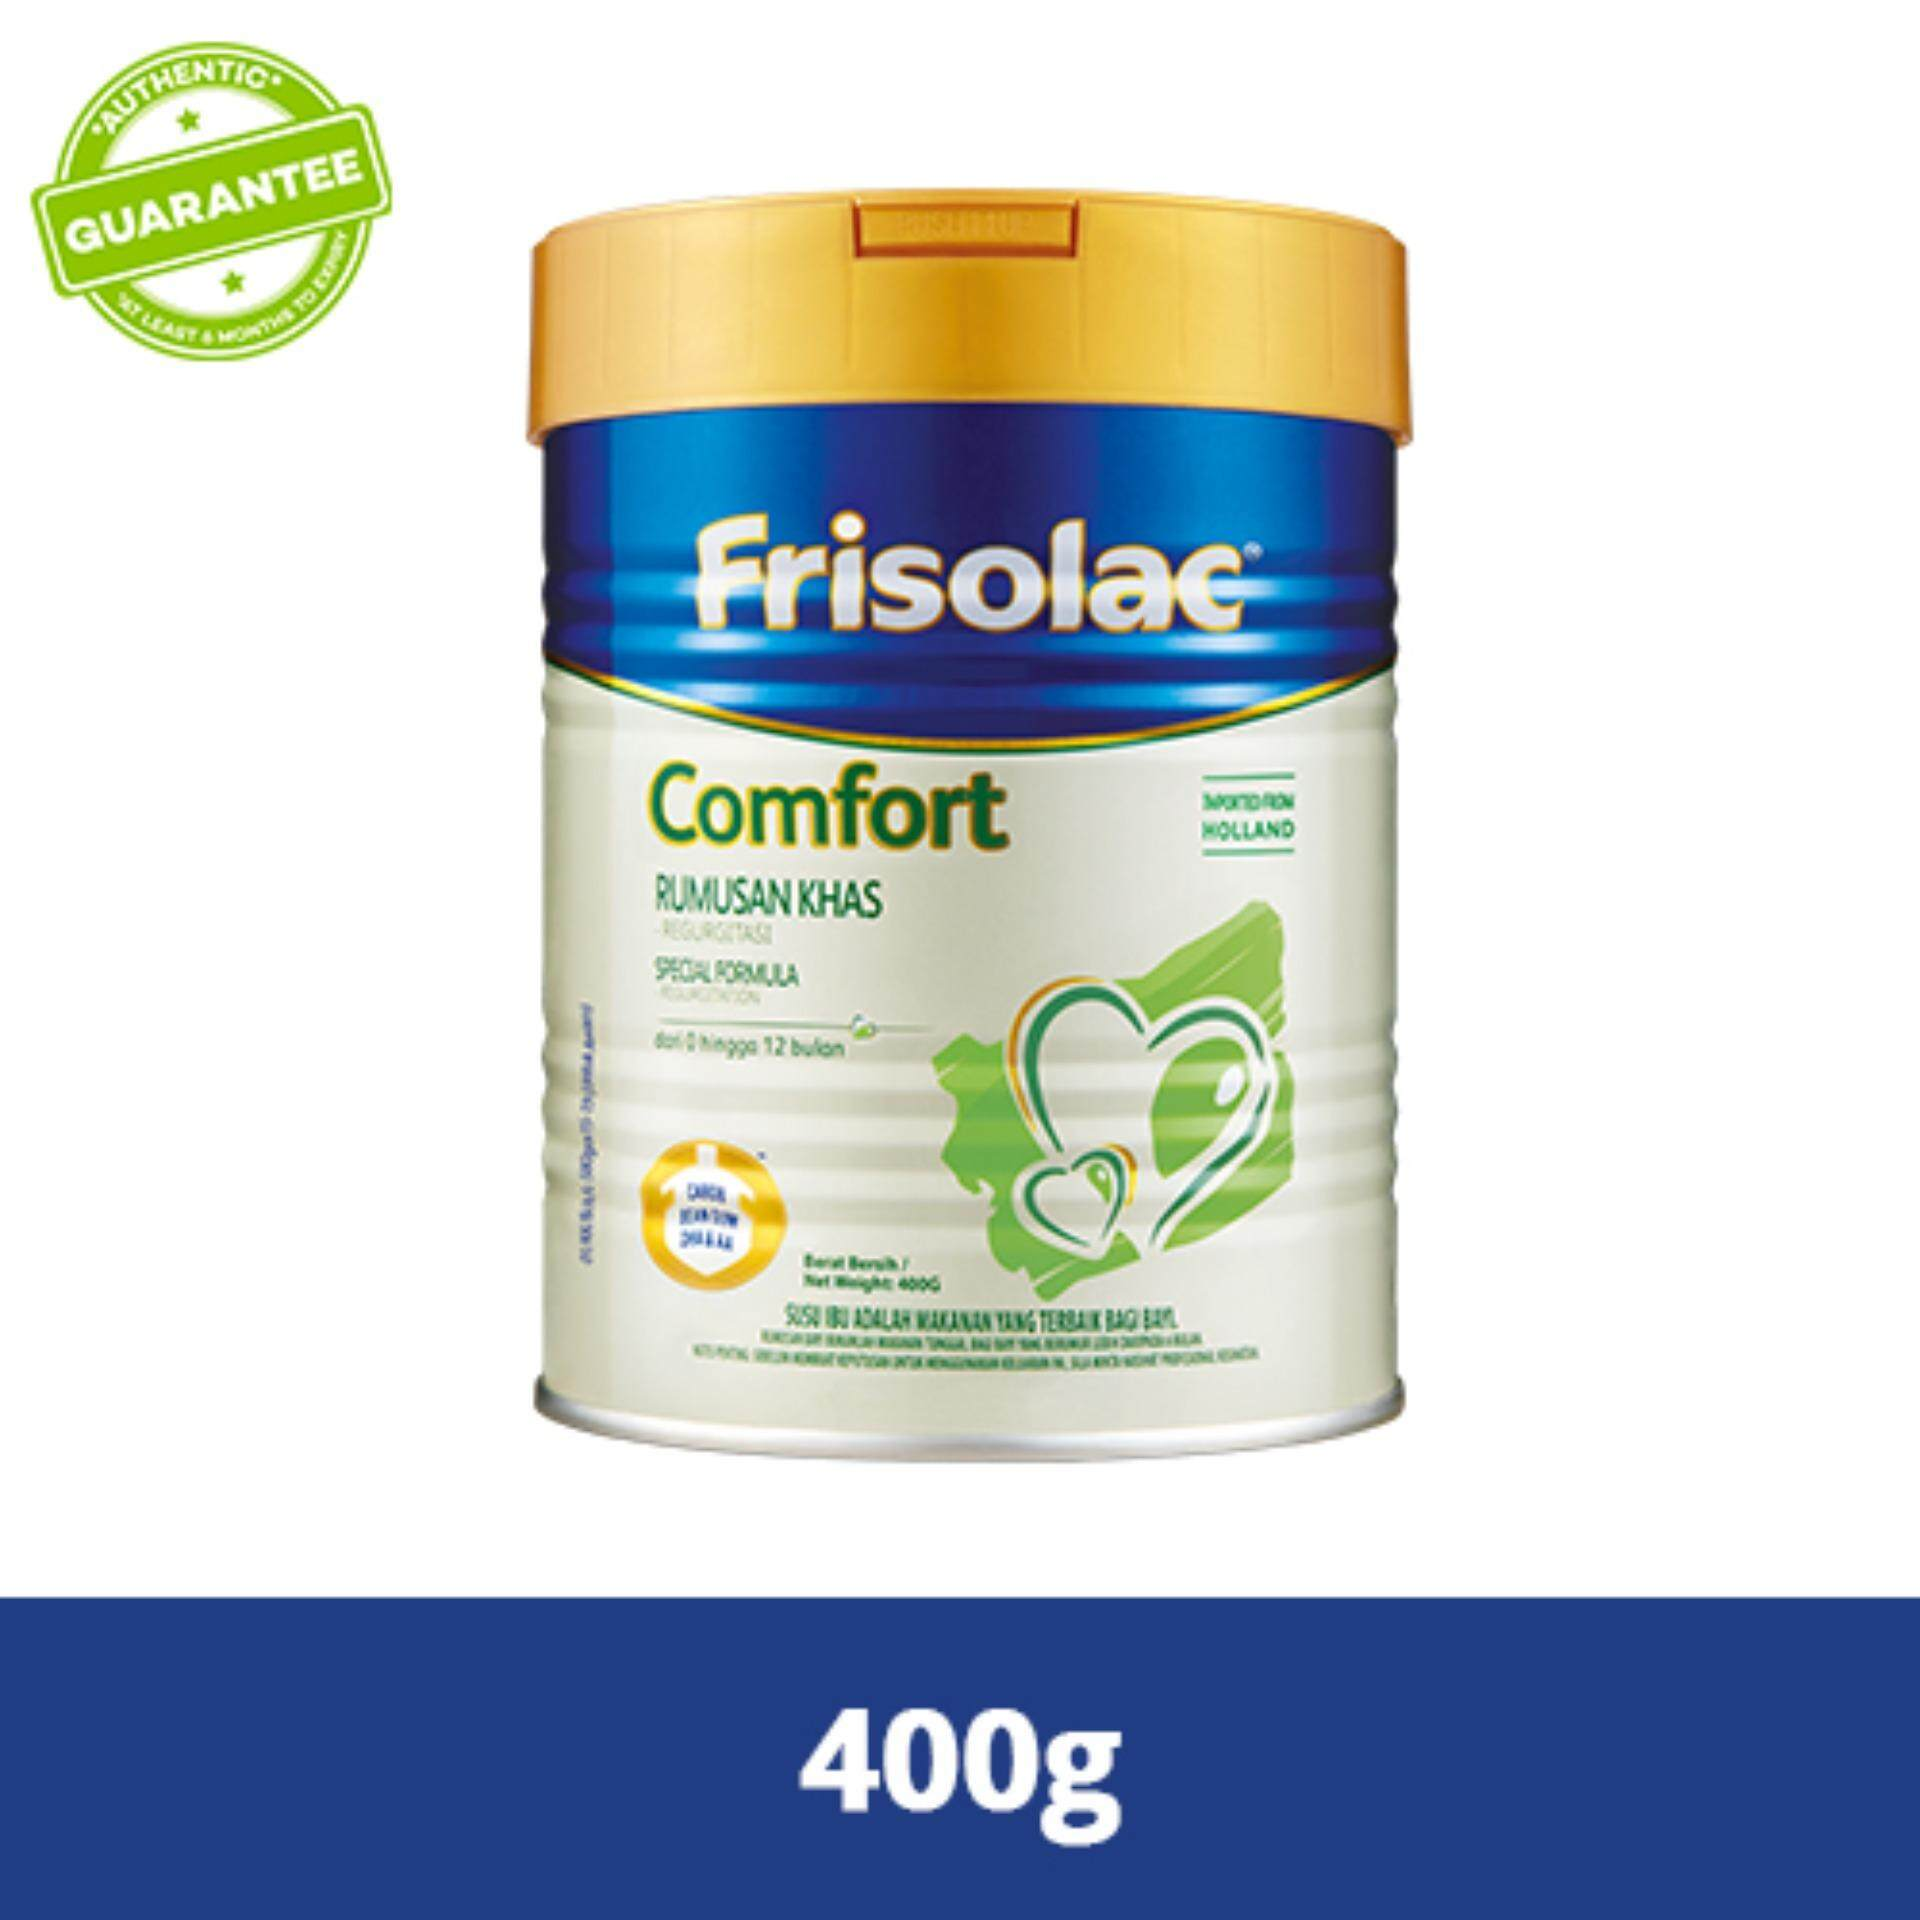 Frisolac Comfort 400g By Lazada Retail Friso Gold.